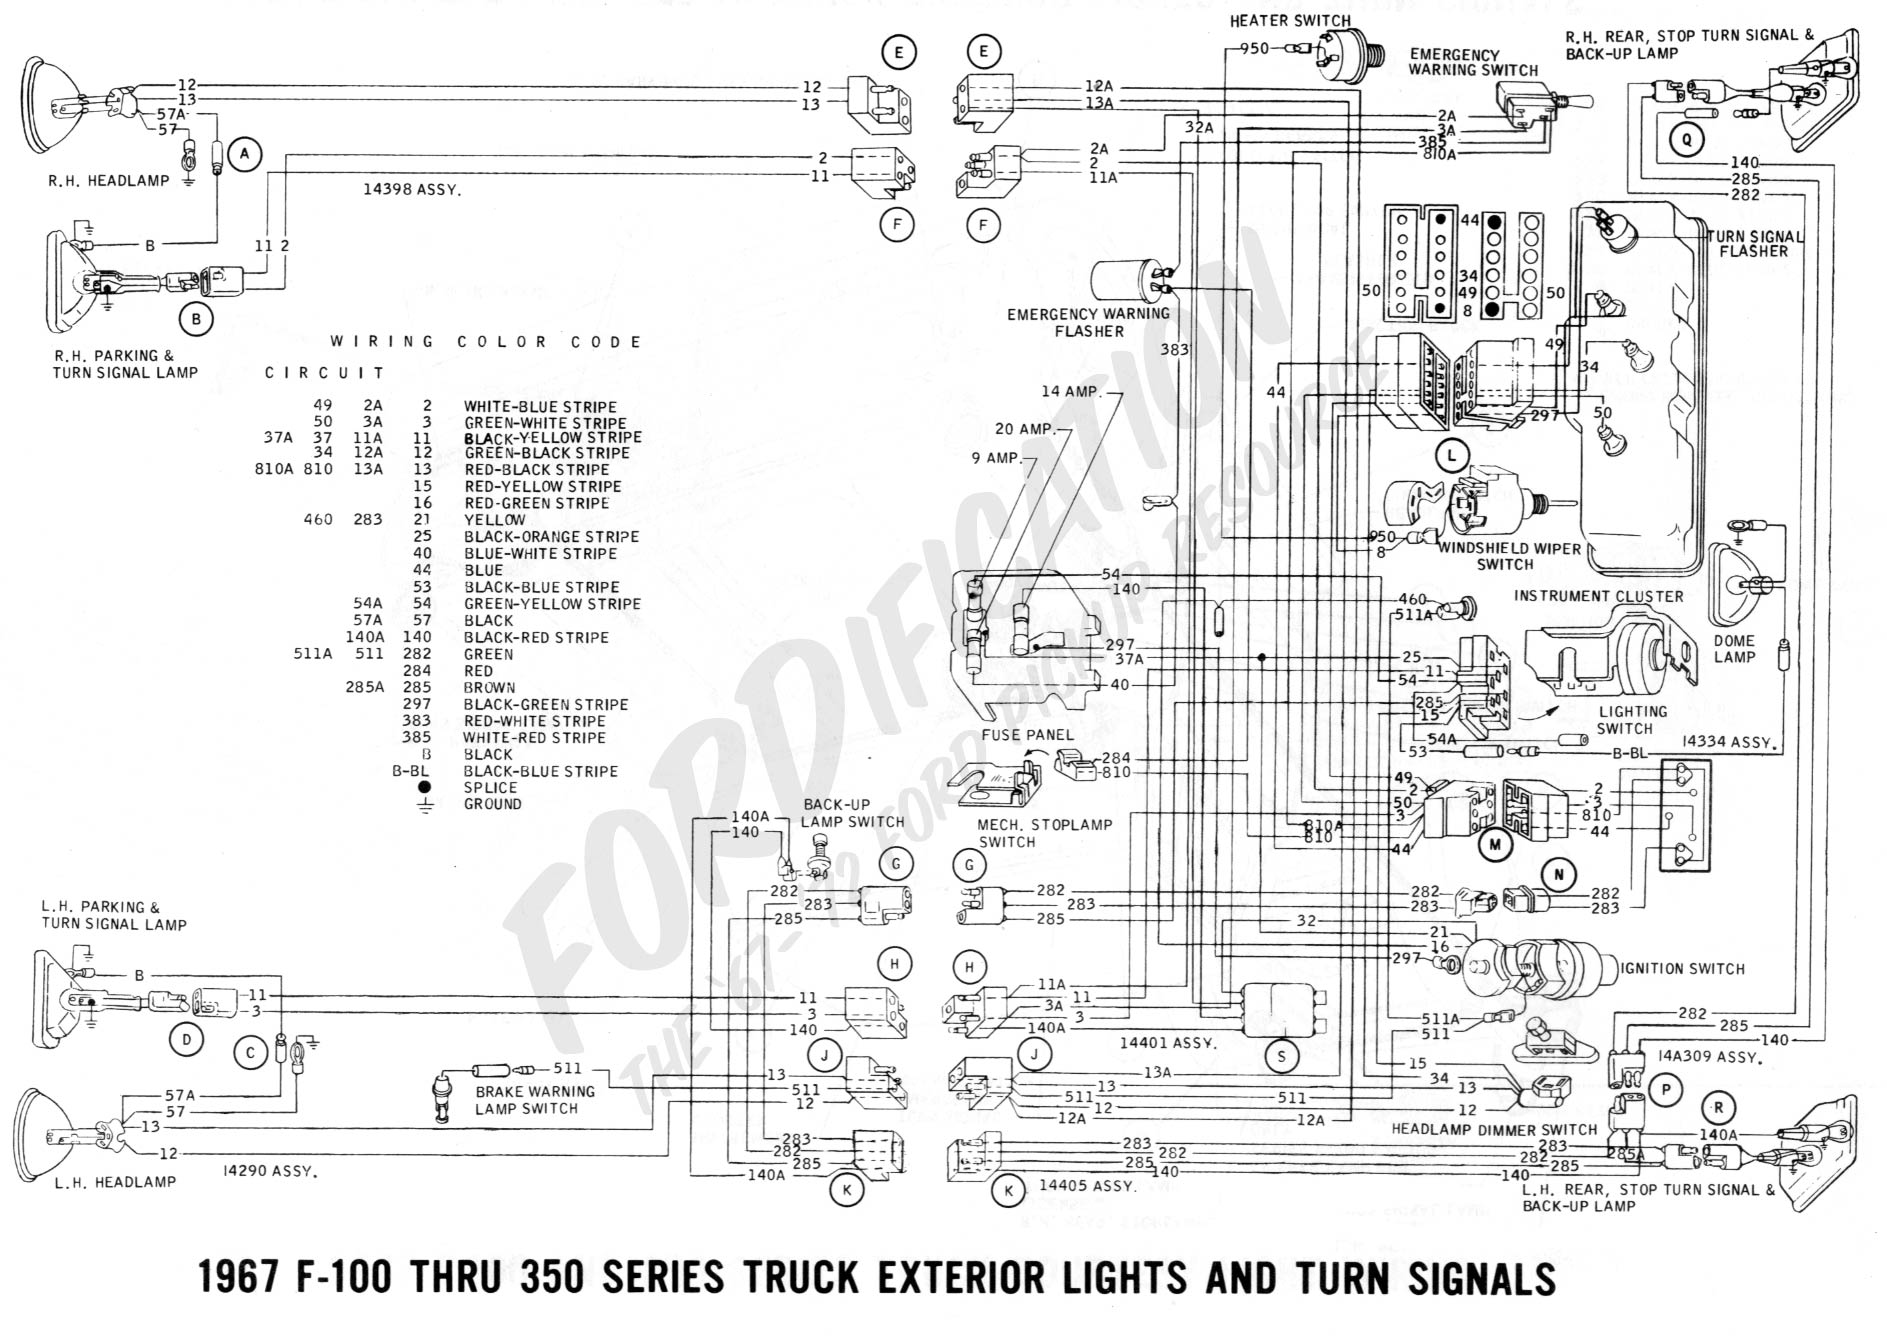 1972 Ford Truck Alternator Wiring Diagram | Wiring Diagram Ford F Alternator Wiring Diagram on ford f250 horn wiring diagram, ford f250 reverse lights wiring diagram, ford f250 trailer wiring diagram,